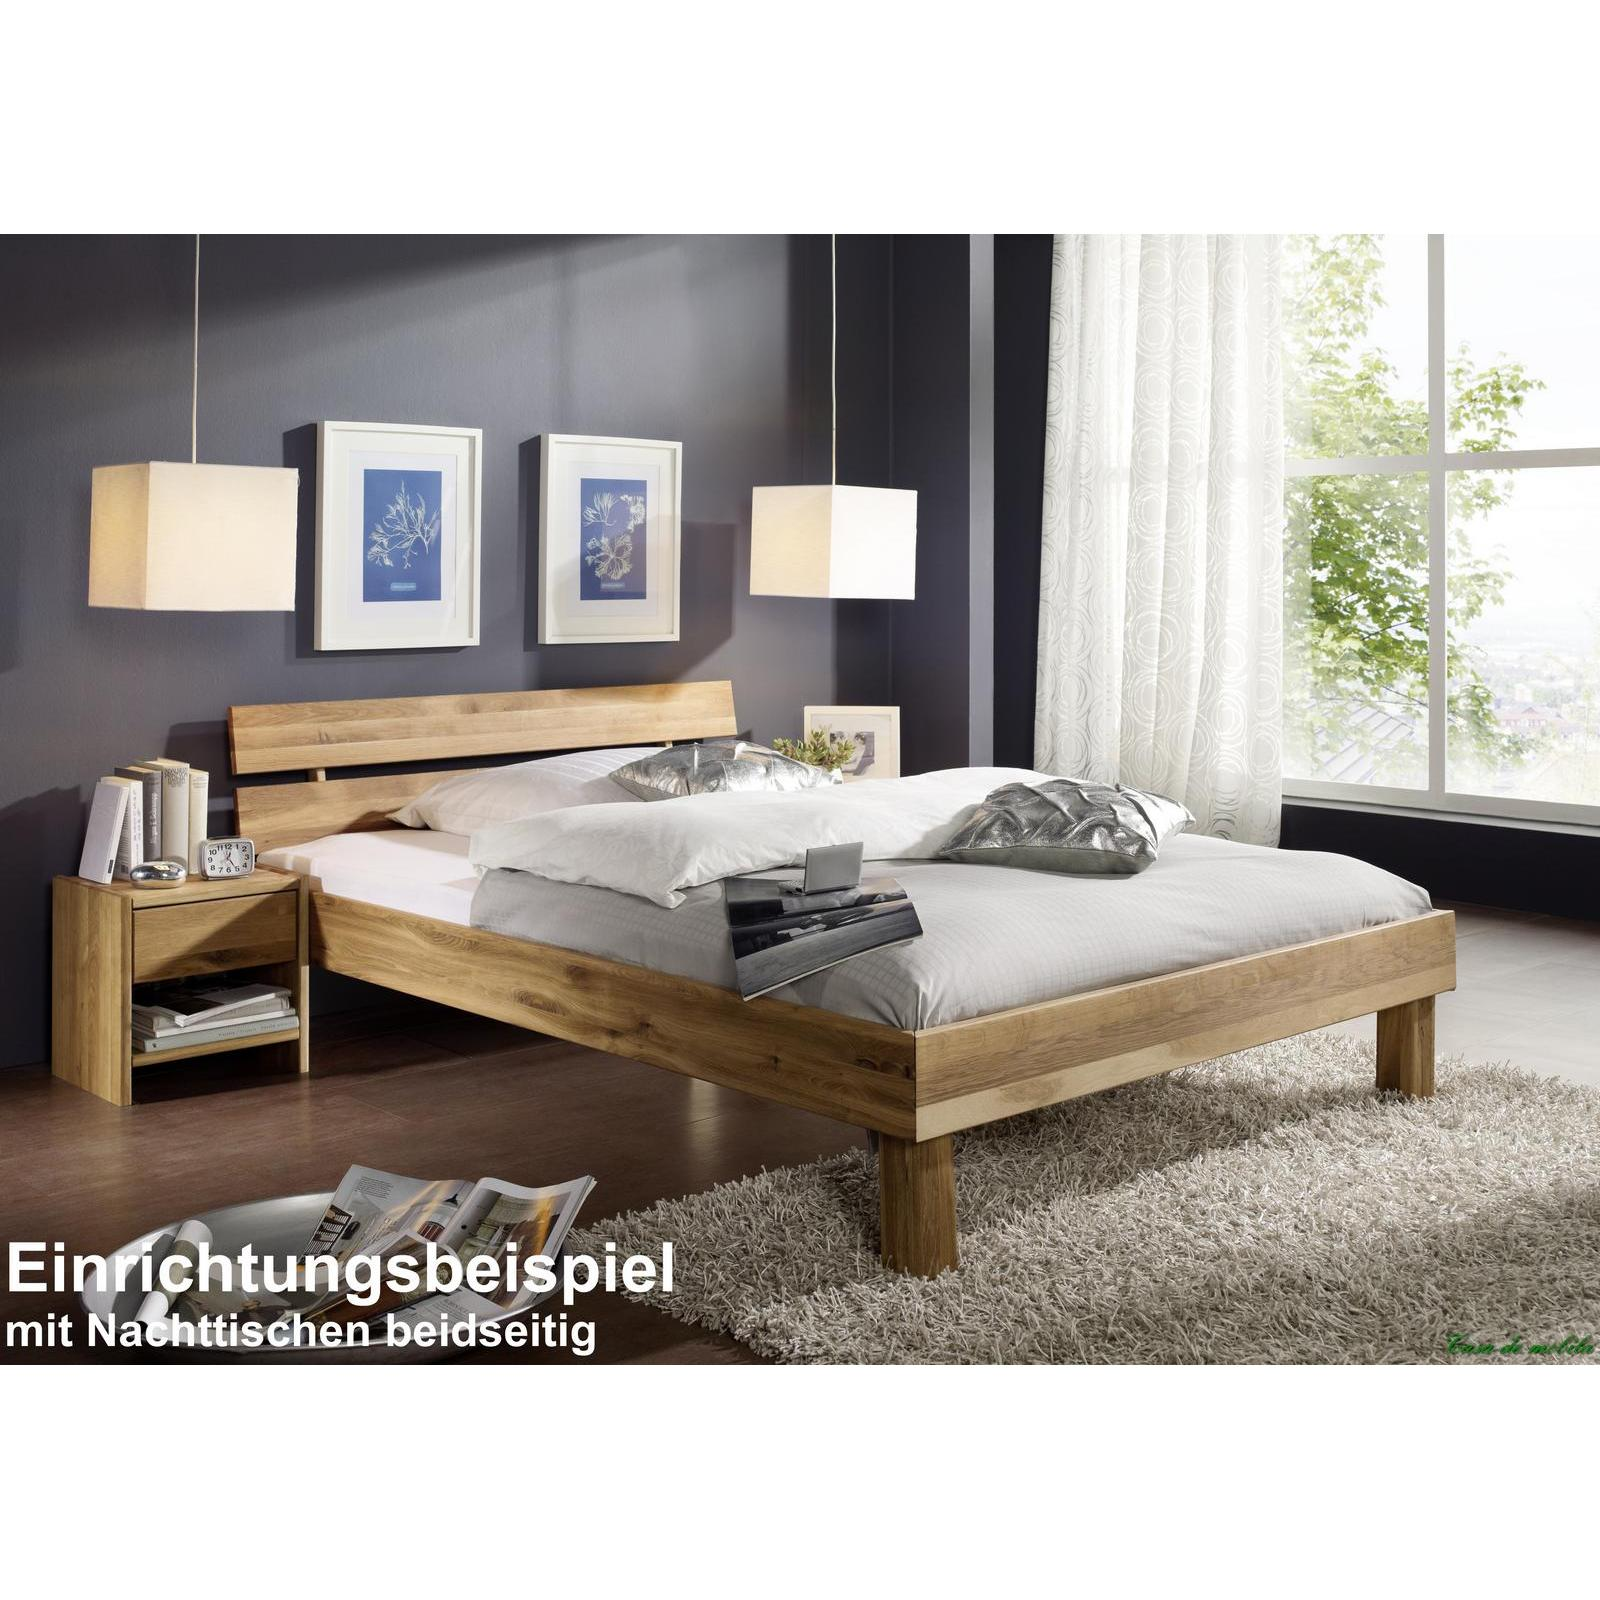 doppelbett schubladen innenarchitektur und m bel inspiration. Black Bedroom Furniture Sets. Home Design Ideas